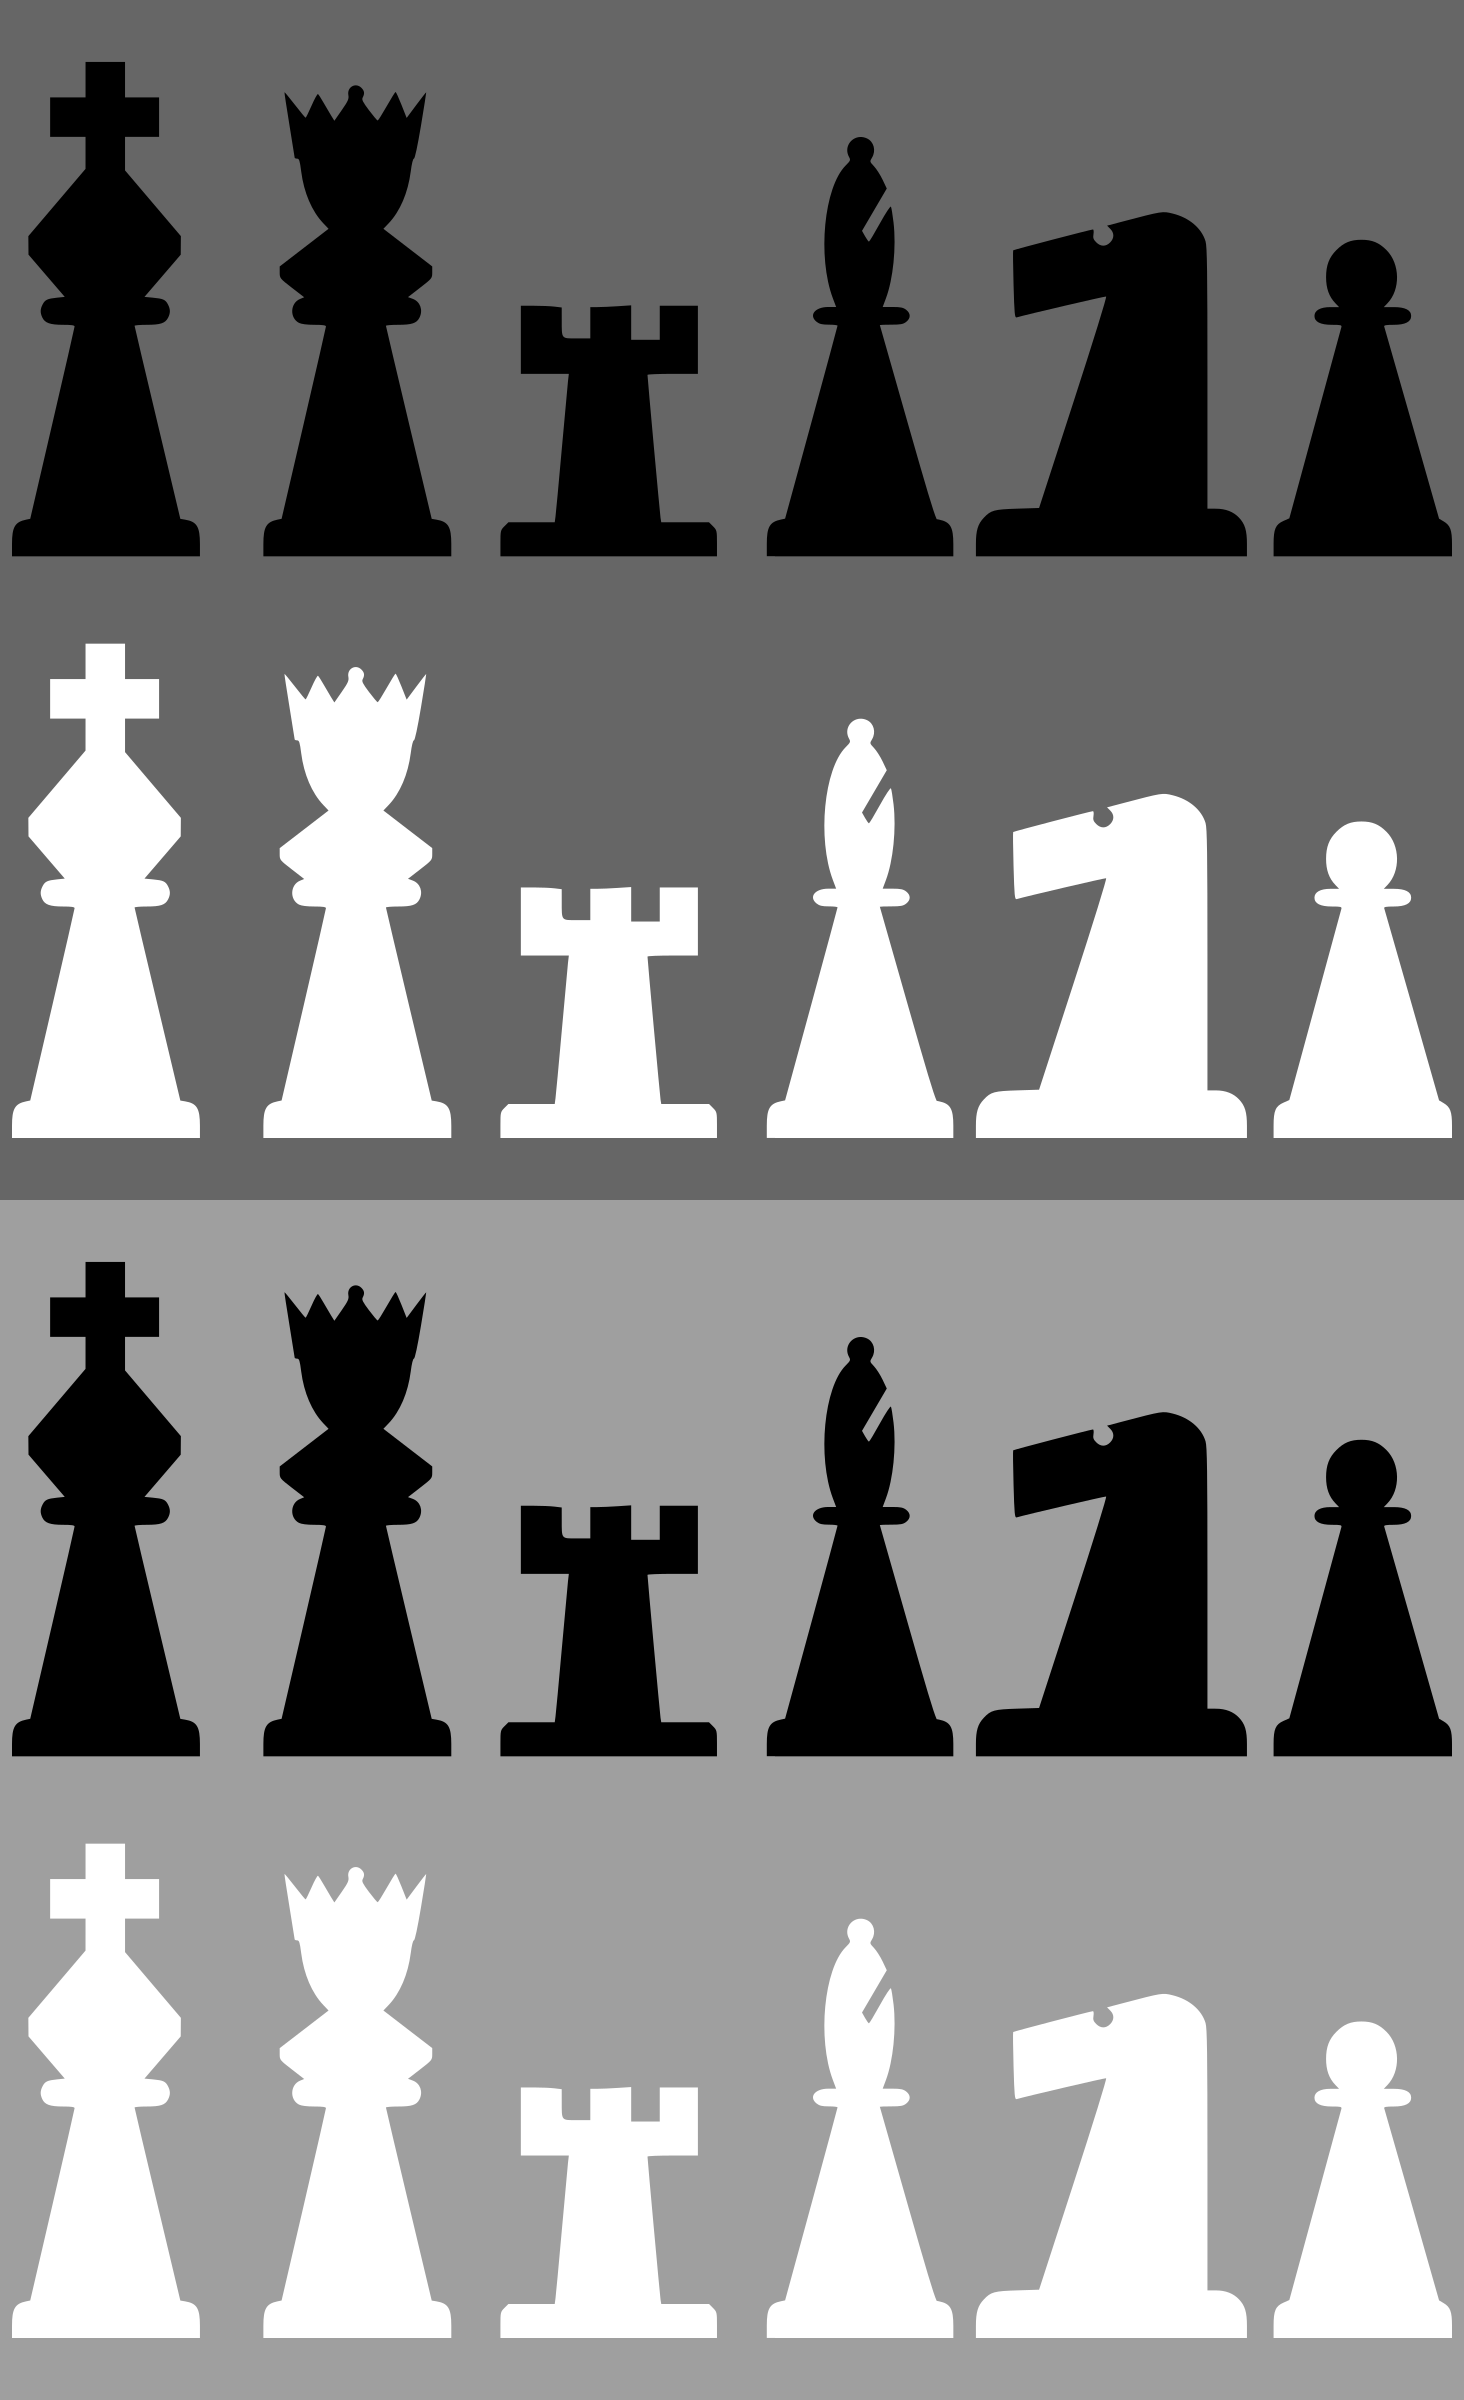 2D Chess set - Pieces by portablejim